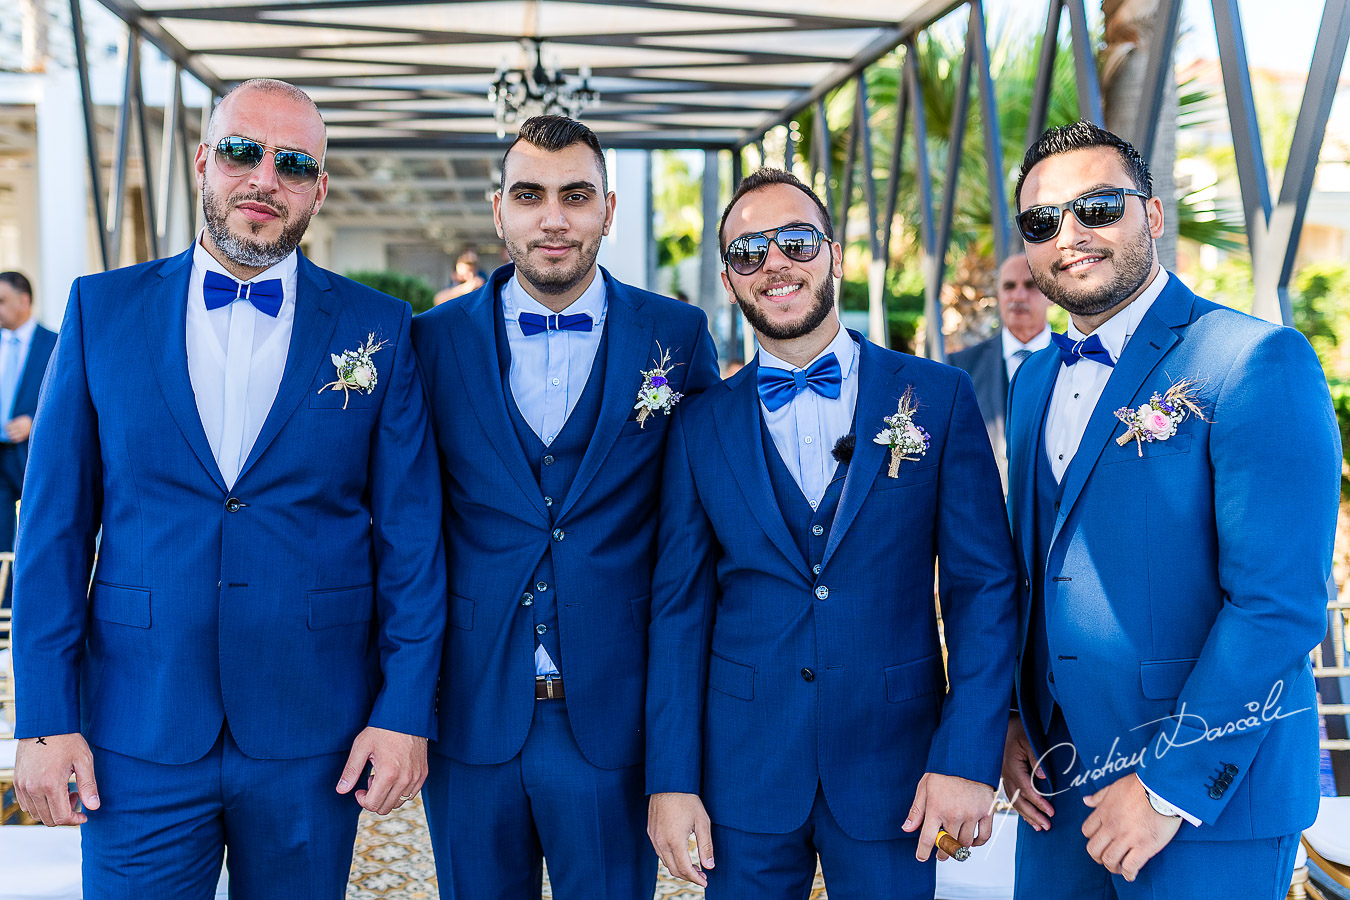 Groom and best men posing before the reception, as part of an Exclusive Wedding photography at Grand Resort Limassol, captured by Cyprus Wedding Photographer Cristian Dascalu.